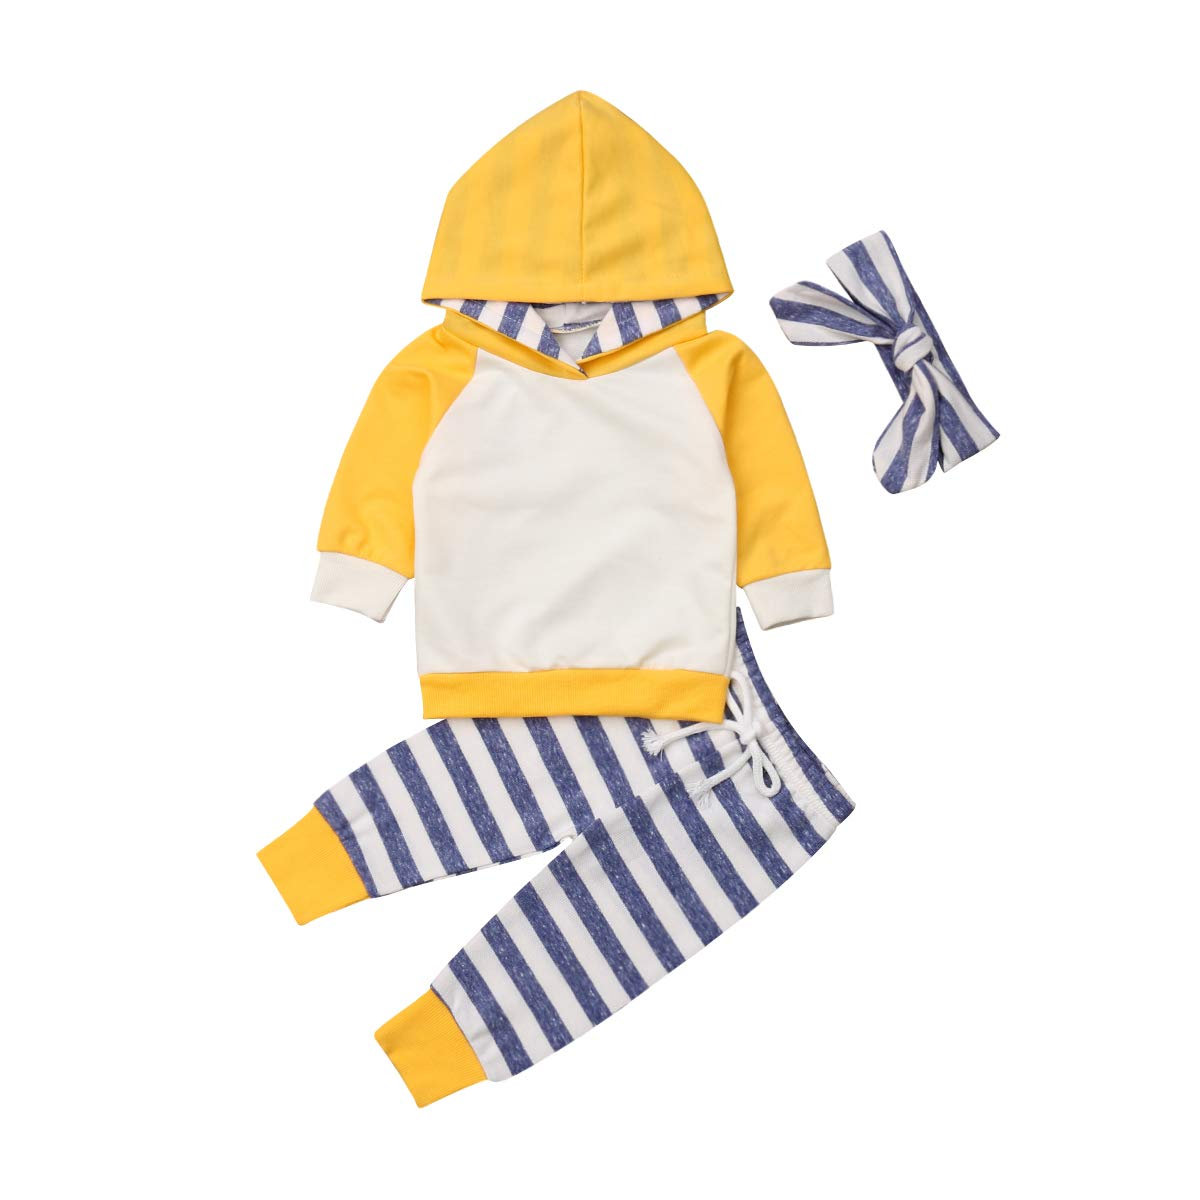 Baby Boys Girls Clothes Long Sleeve Hoodie Tops Sweatsuit Pants Headband Outfits Set 0-24 Months